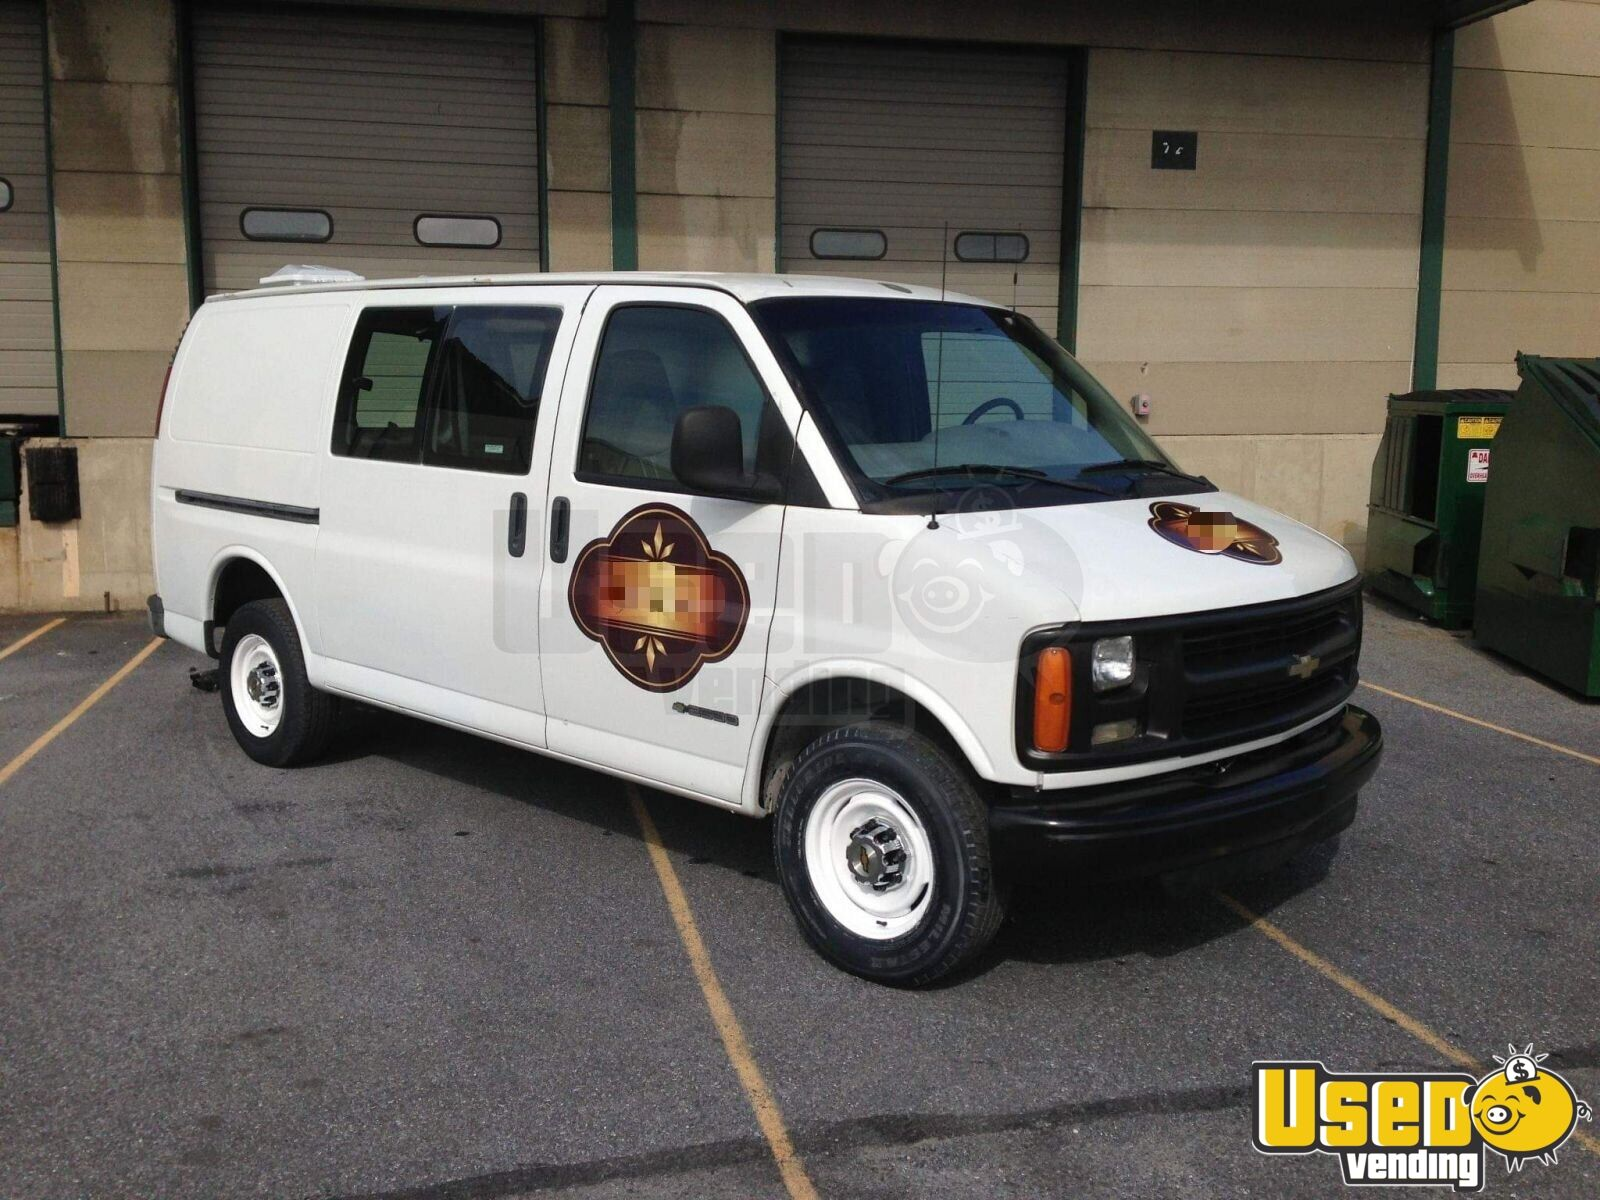 2000 Chevy Express 2500 Coffee Truck Air Conditioning Virginia Gas Engine for Sale - 2